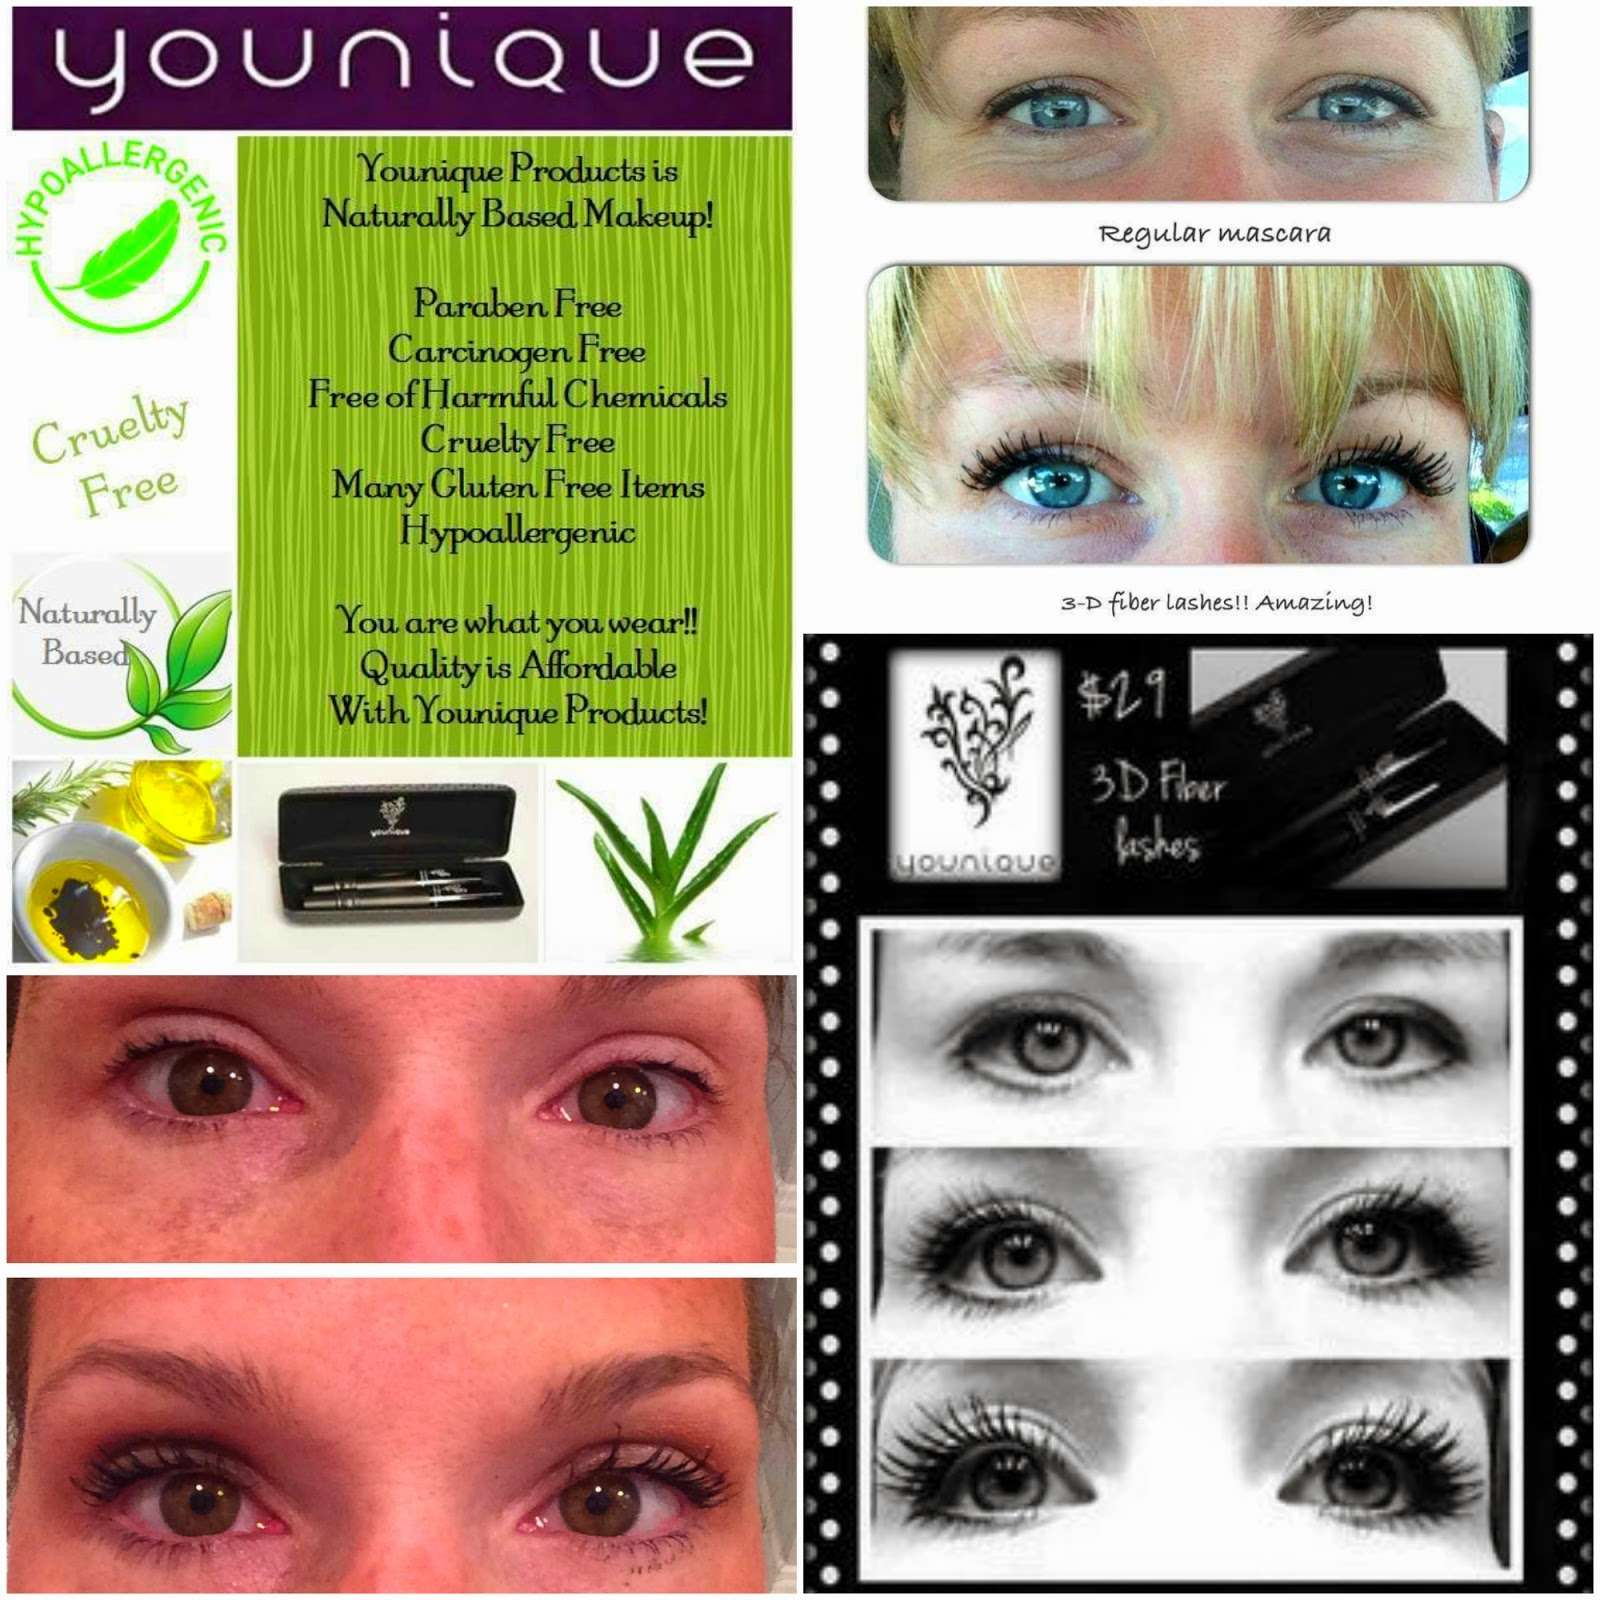 https://www.youniqueproducts.com/captainlash/products/view/US-1017-00